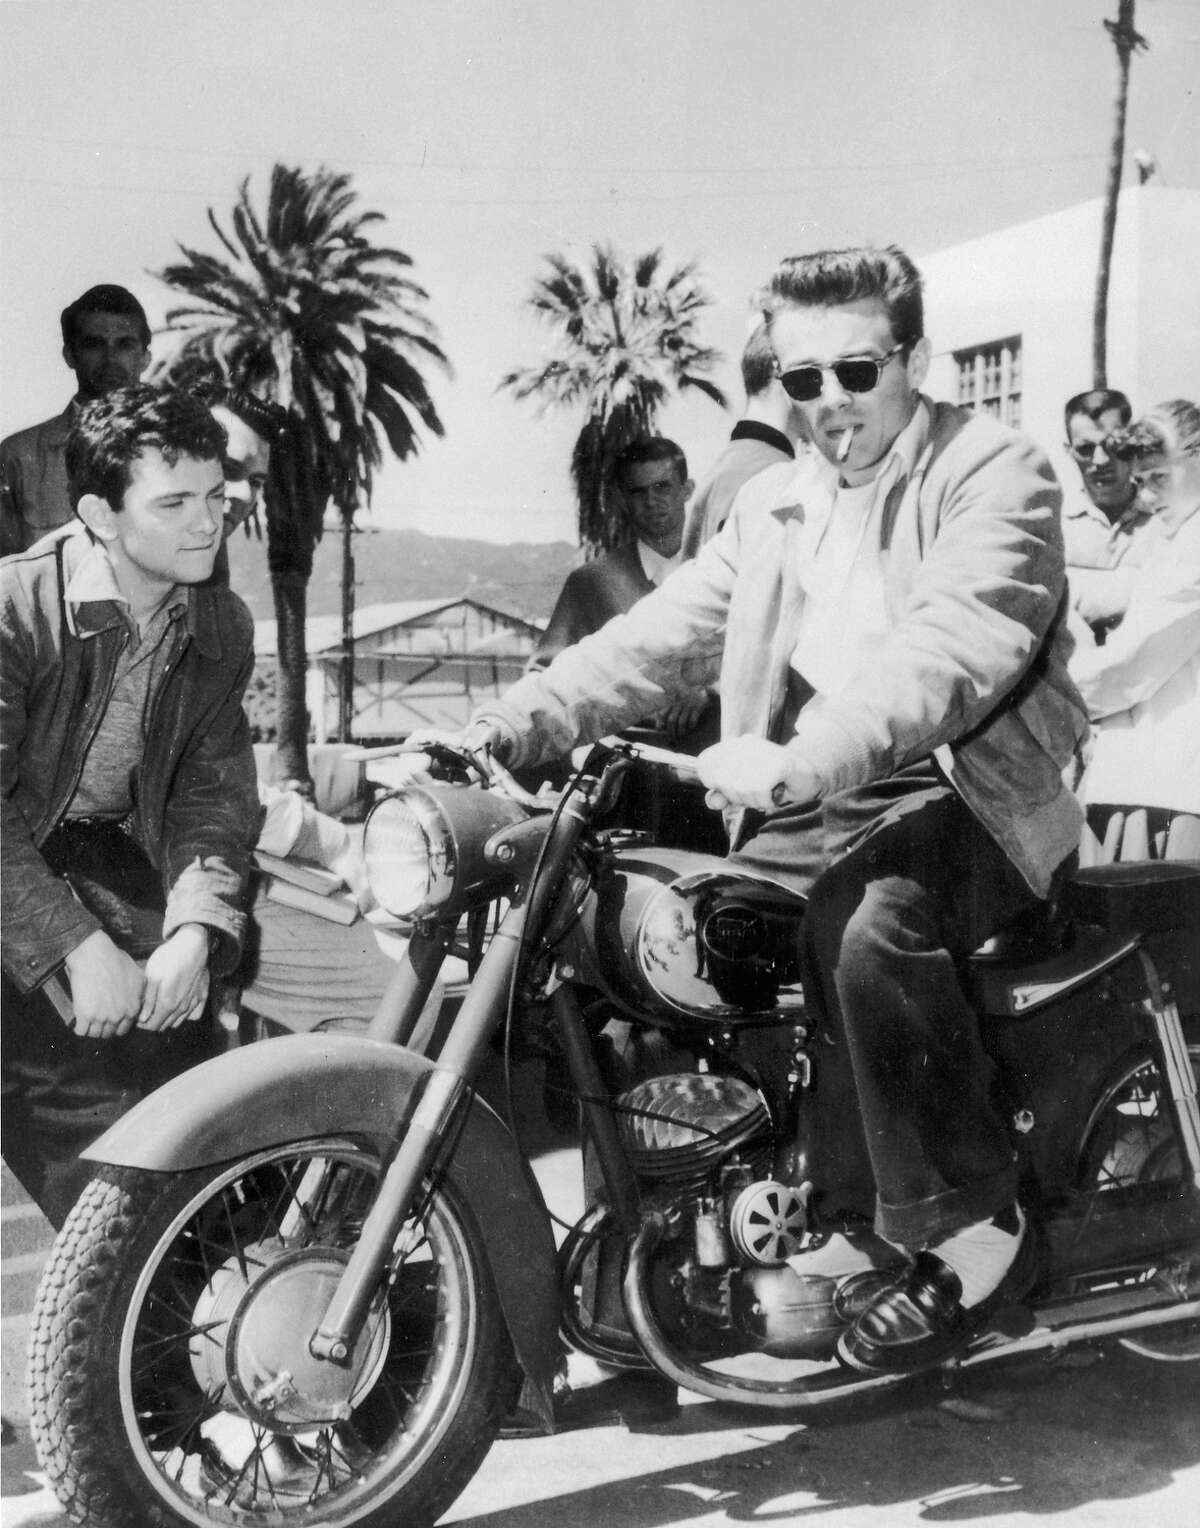 James Dean loved all things fast.